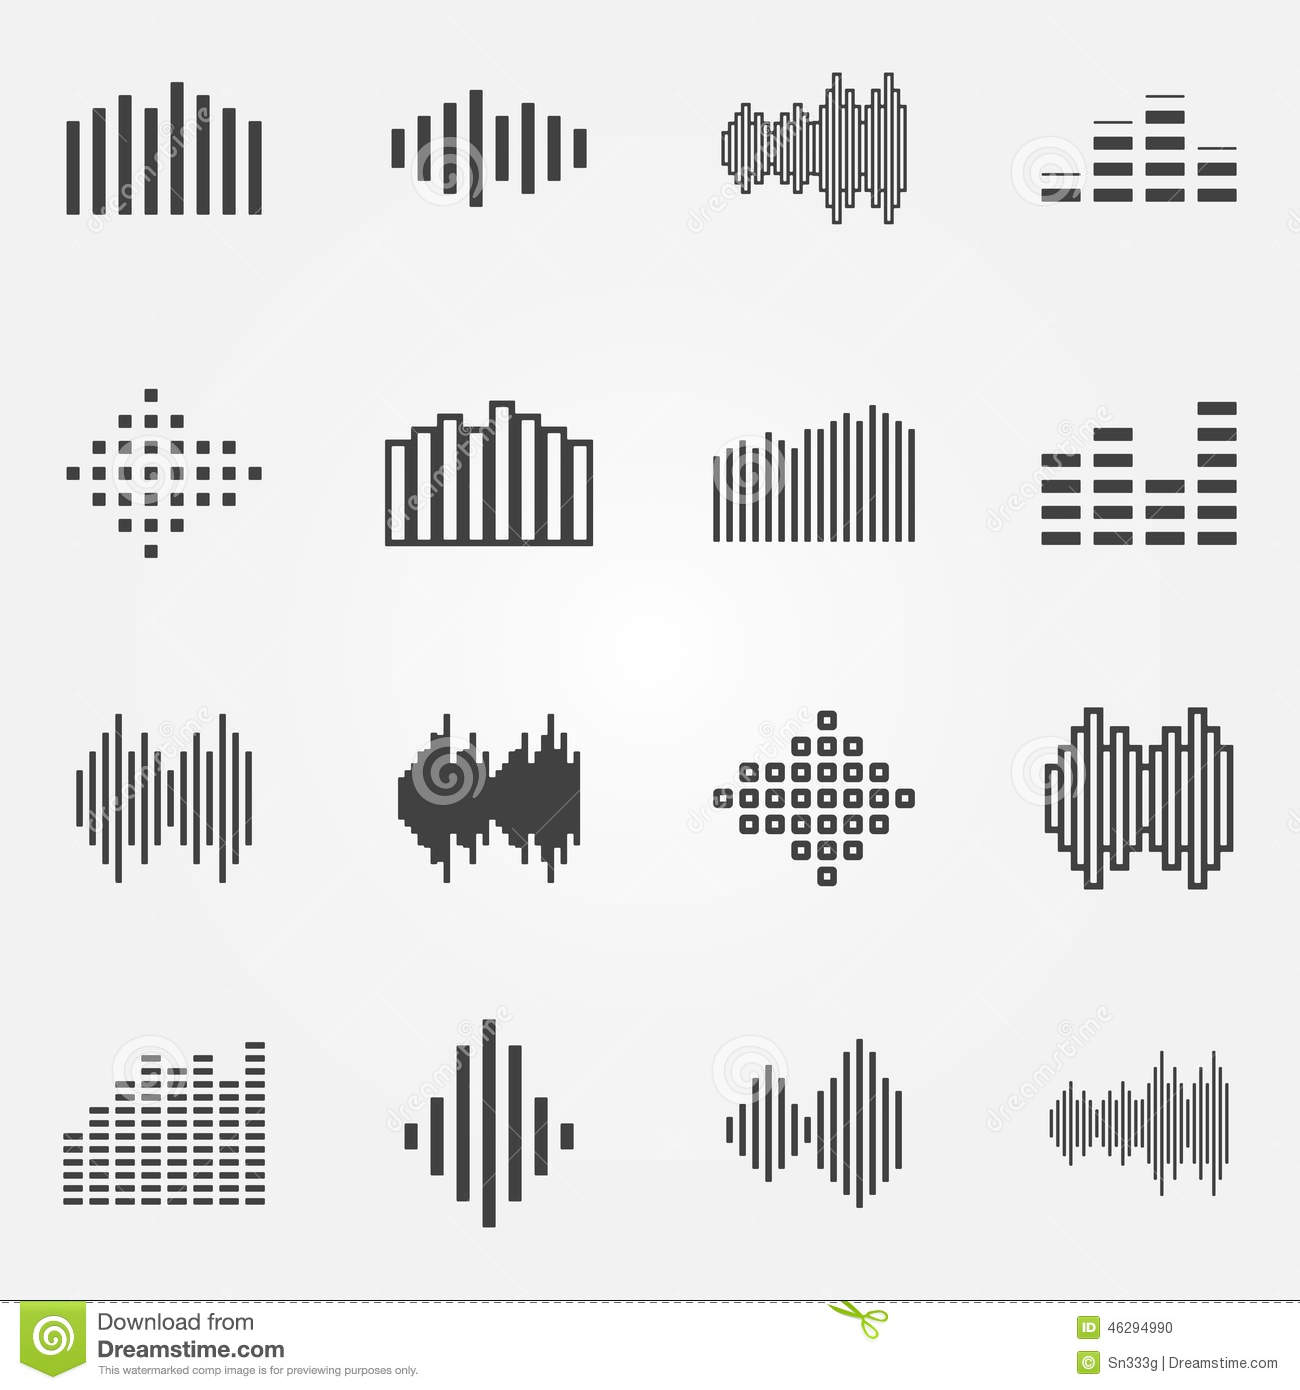 how to draw a sound wave